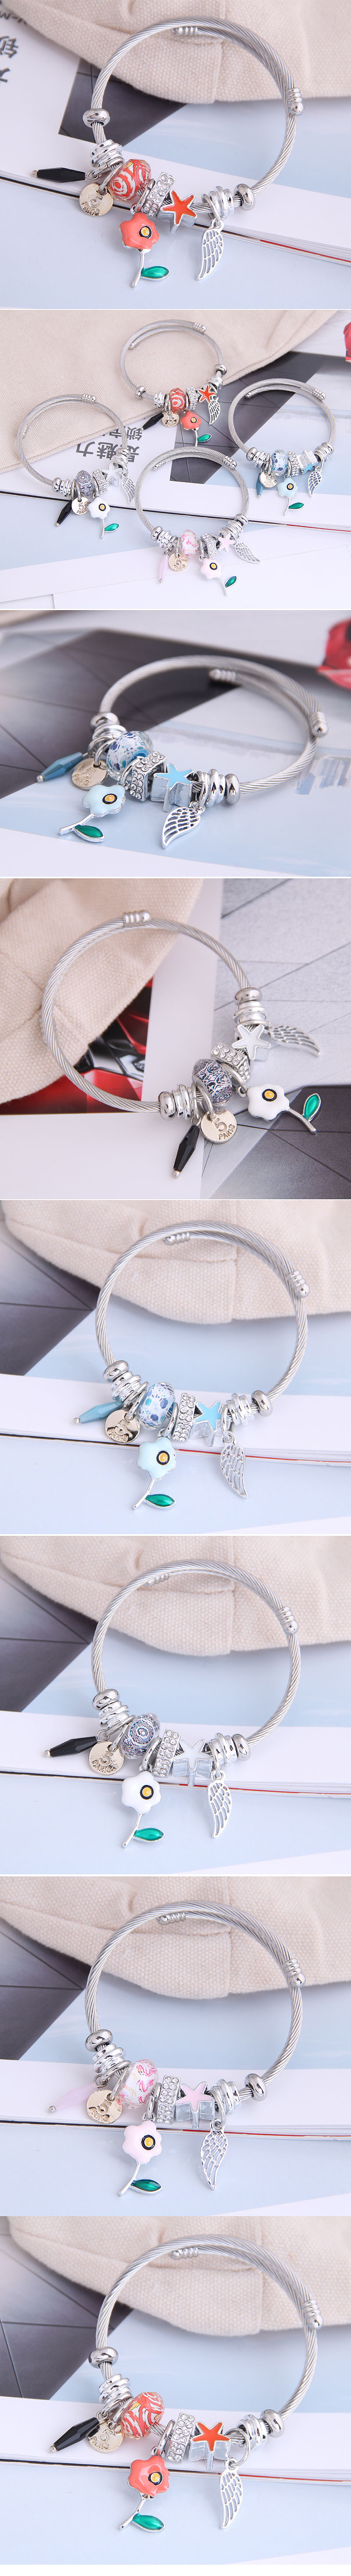 fashion metal wild pan DL simple small flower wings pendant multi-element accessories personalized bracelet wholesale nihaojewelry NHSC219331